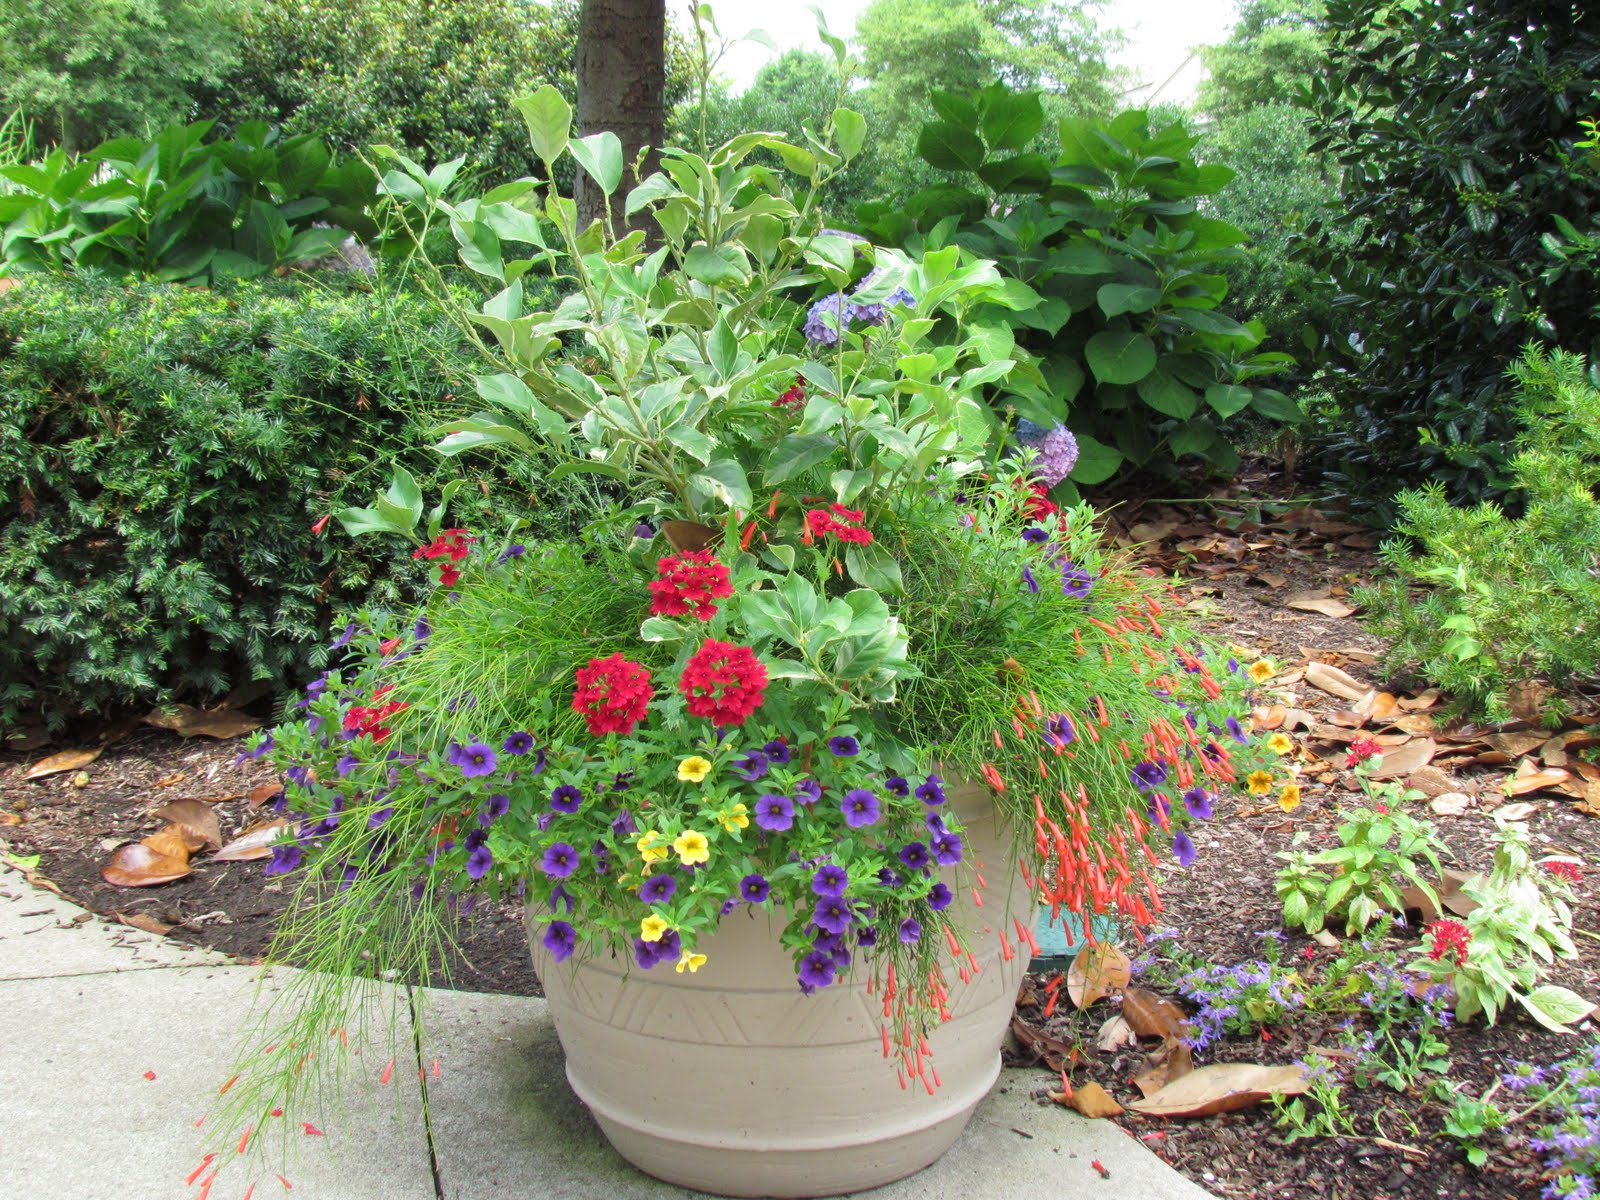 Bwisegardening: DAY 365 Of 365 Days Of Container Gardening